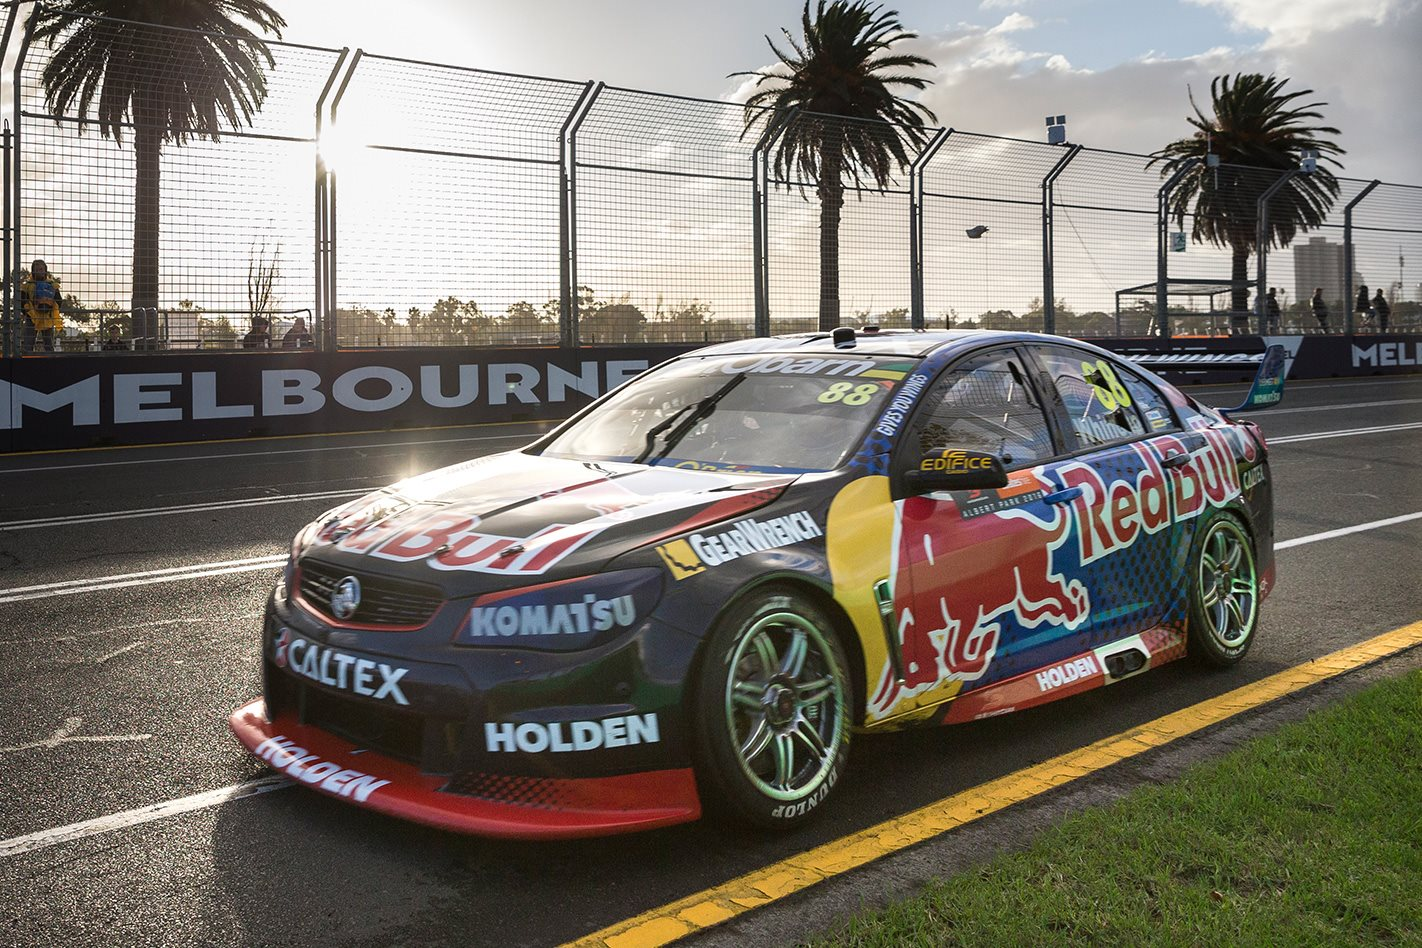 ford v8 supercar with Holden Dumps Walkinshaw For Triple Eight As Factory Holden Racing Team on Holden Dumps Walkinshaw For Triple Eight As Factory Holden Racing Team as well 1994 Ford Saleen Mustang S 351 as well 2018 Holden  modore Revealed 47908 furthermore Mclaren 2018 Senna Gtr Concept as well Maseratis New Gransport V8 Supercar.